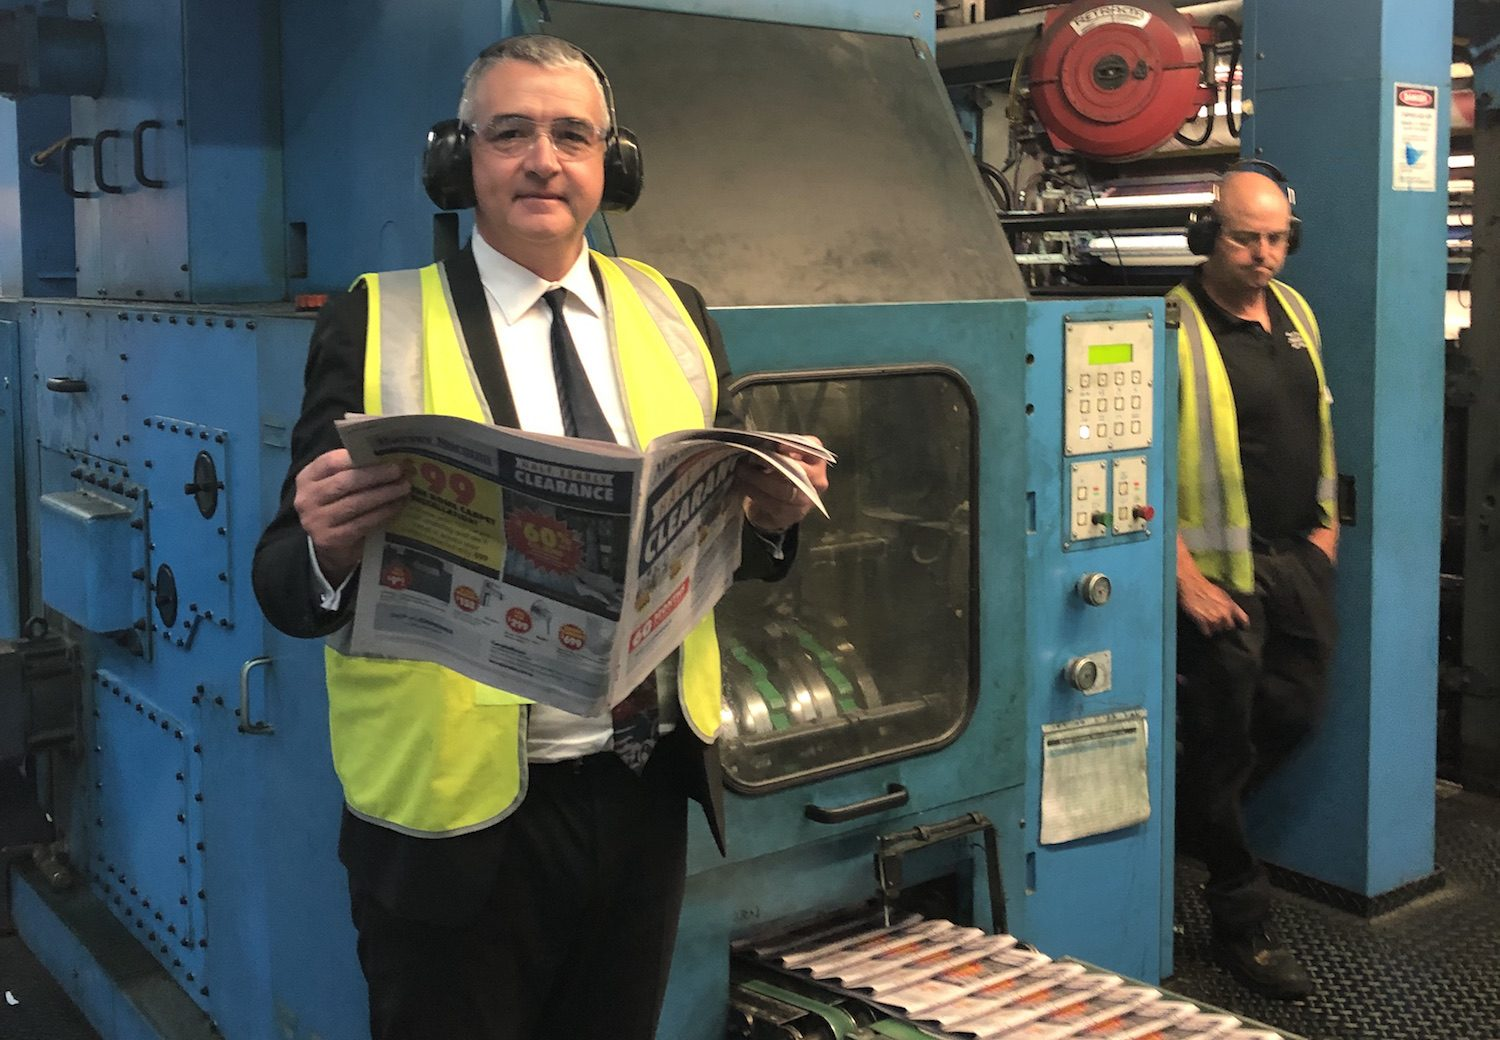 NewsLocal publisher John McGourty inspects the first edition of the new-look Macarthur Chronicle as it comes off the press